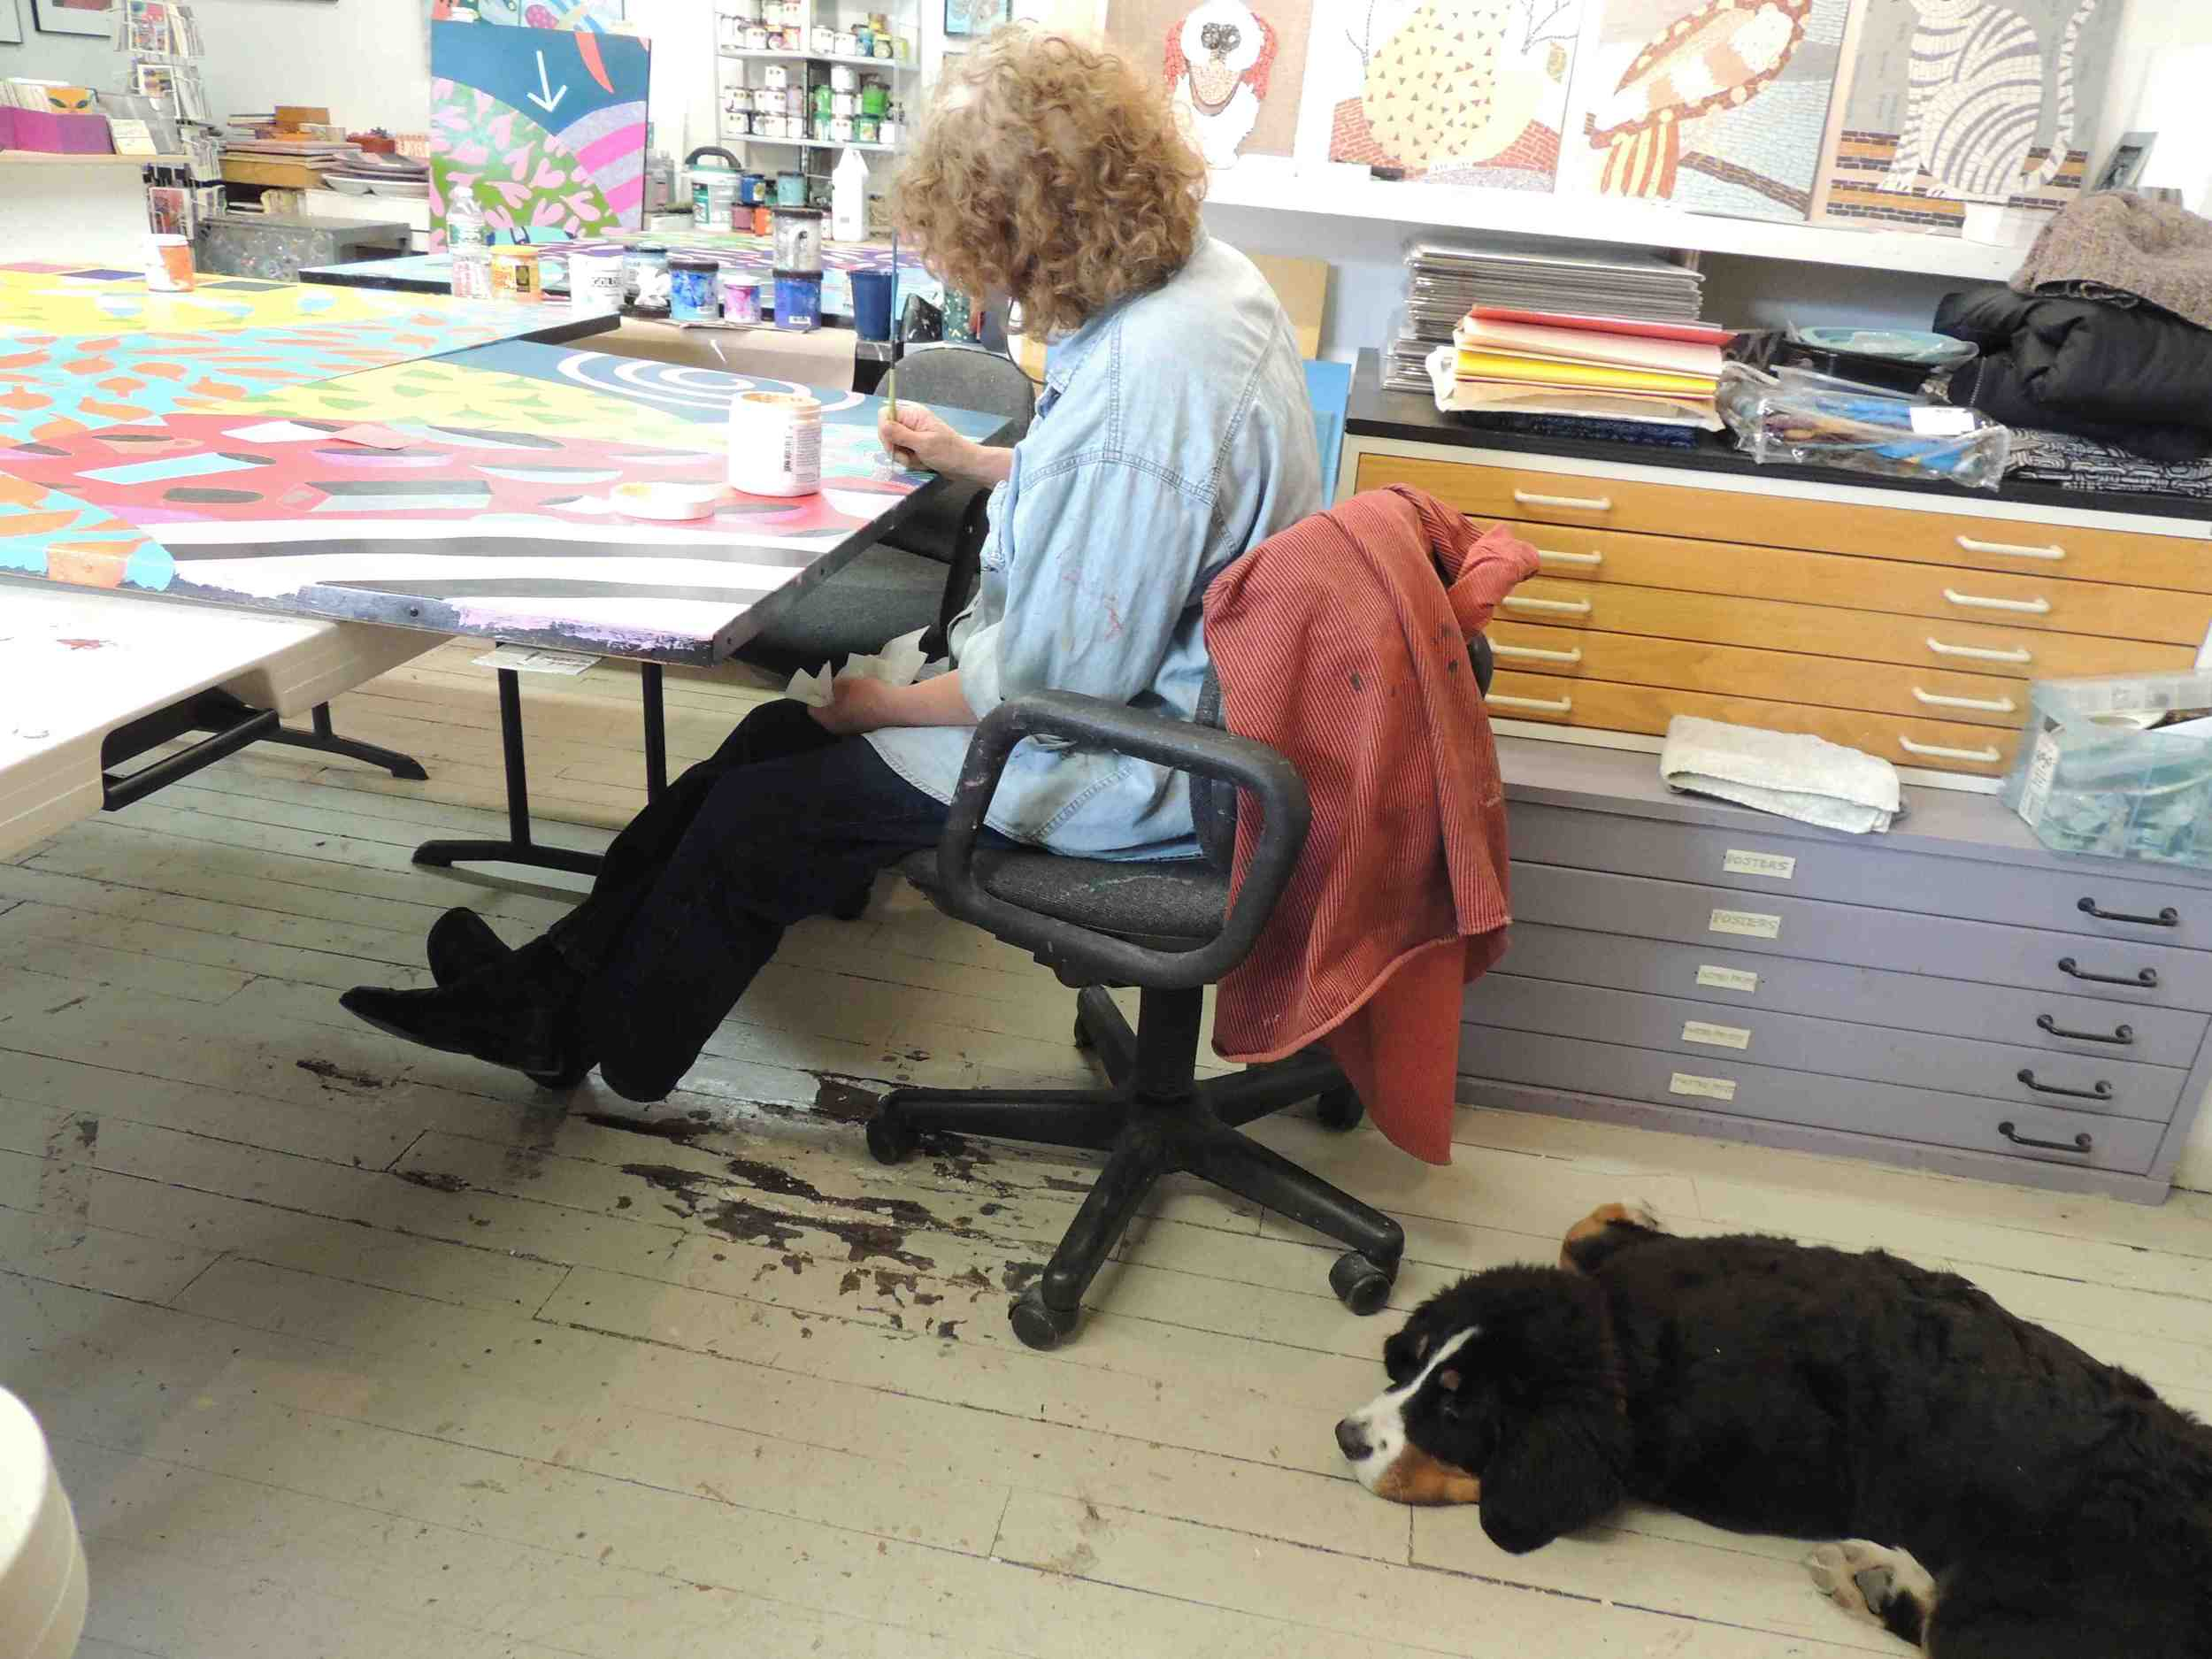 Regina Gaudette and my new puppy Maya were both very dedicated to the project.